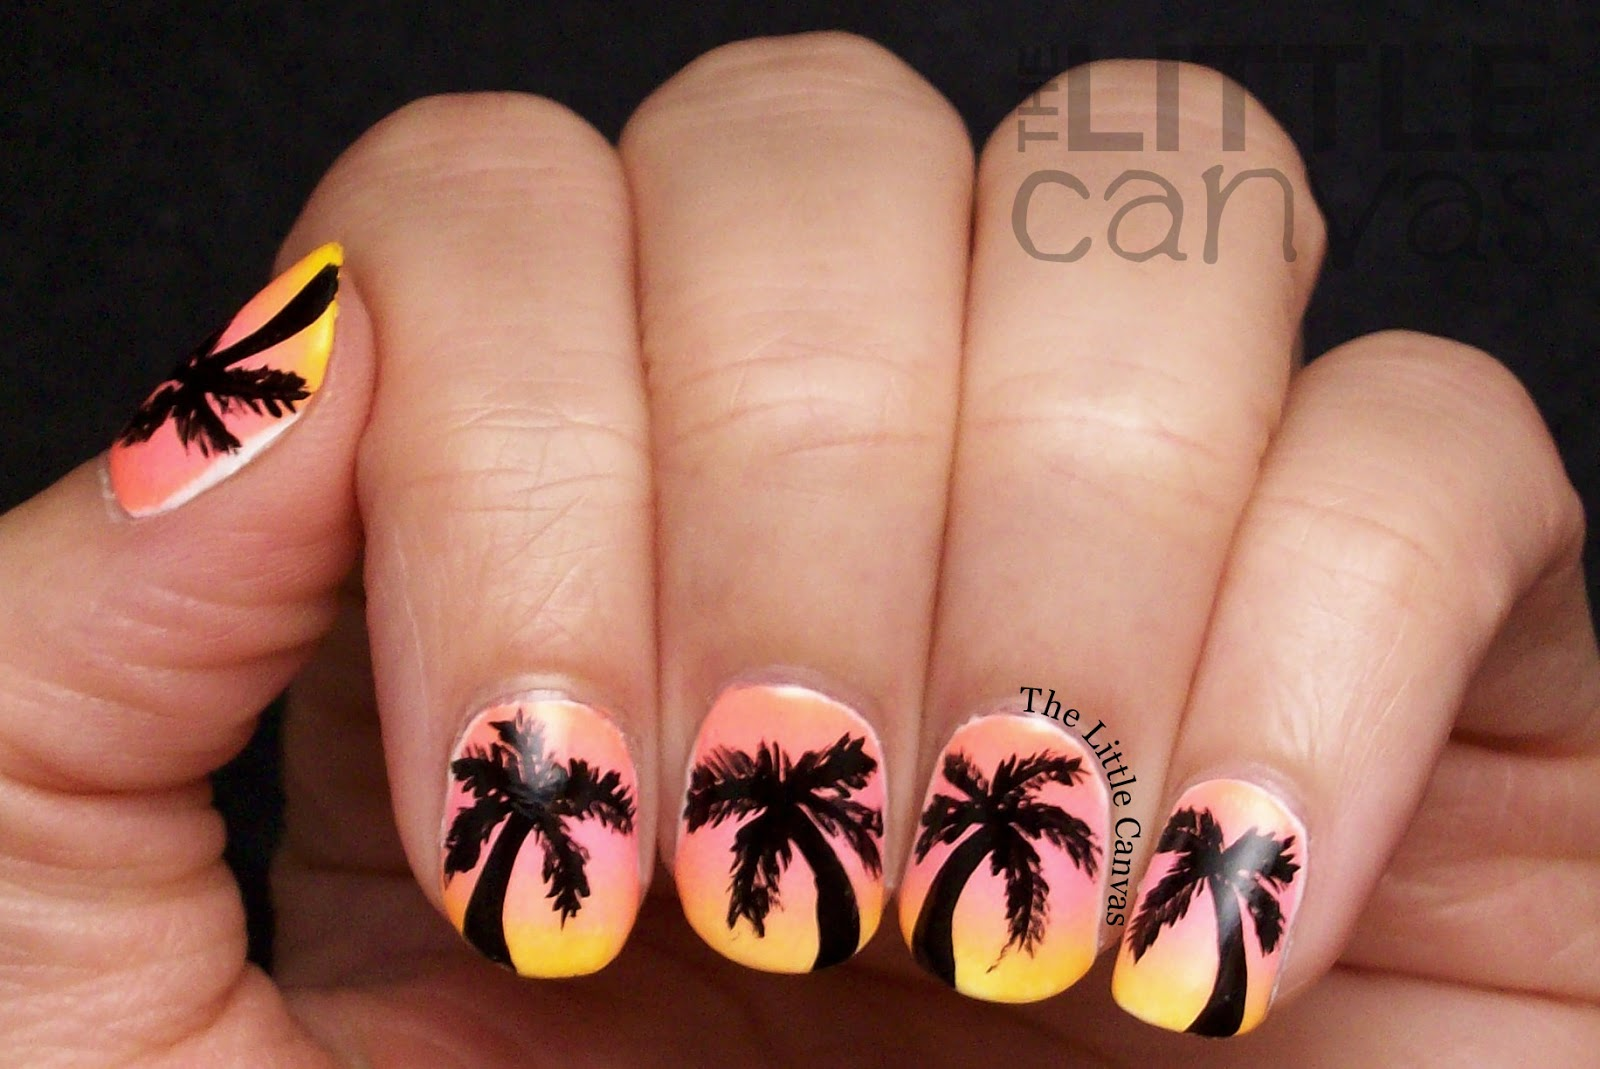 Wonderful Swirl Nail Polish Thick Nail Art Games For Kids Shaped How To Do Nail Art Designs Step By Step Nail Art Tv Show Youthful Best Nail Polish Blogs FreshNail Art Stickers Online The Little Canvas: Tropical Palm Tree Nail Art